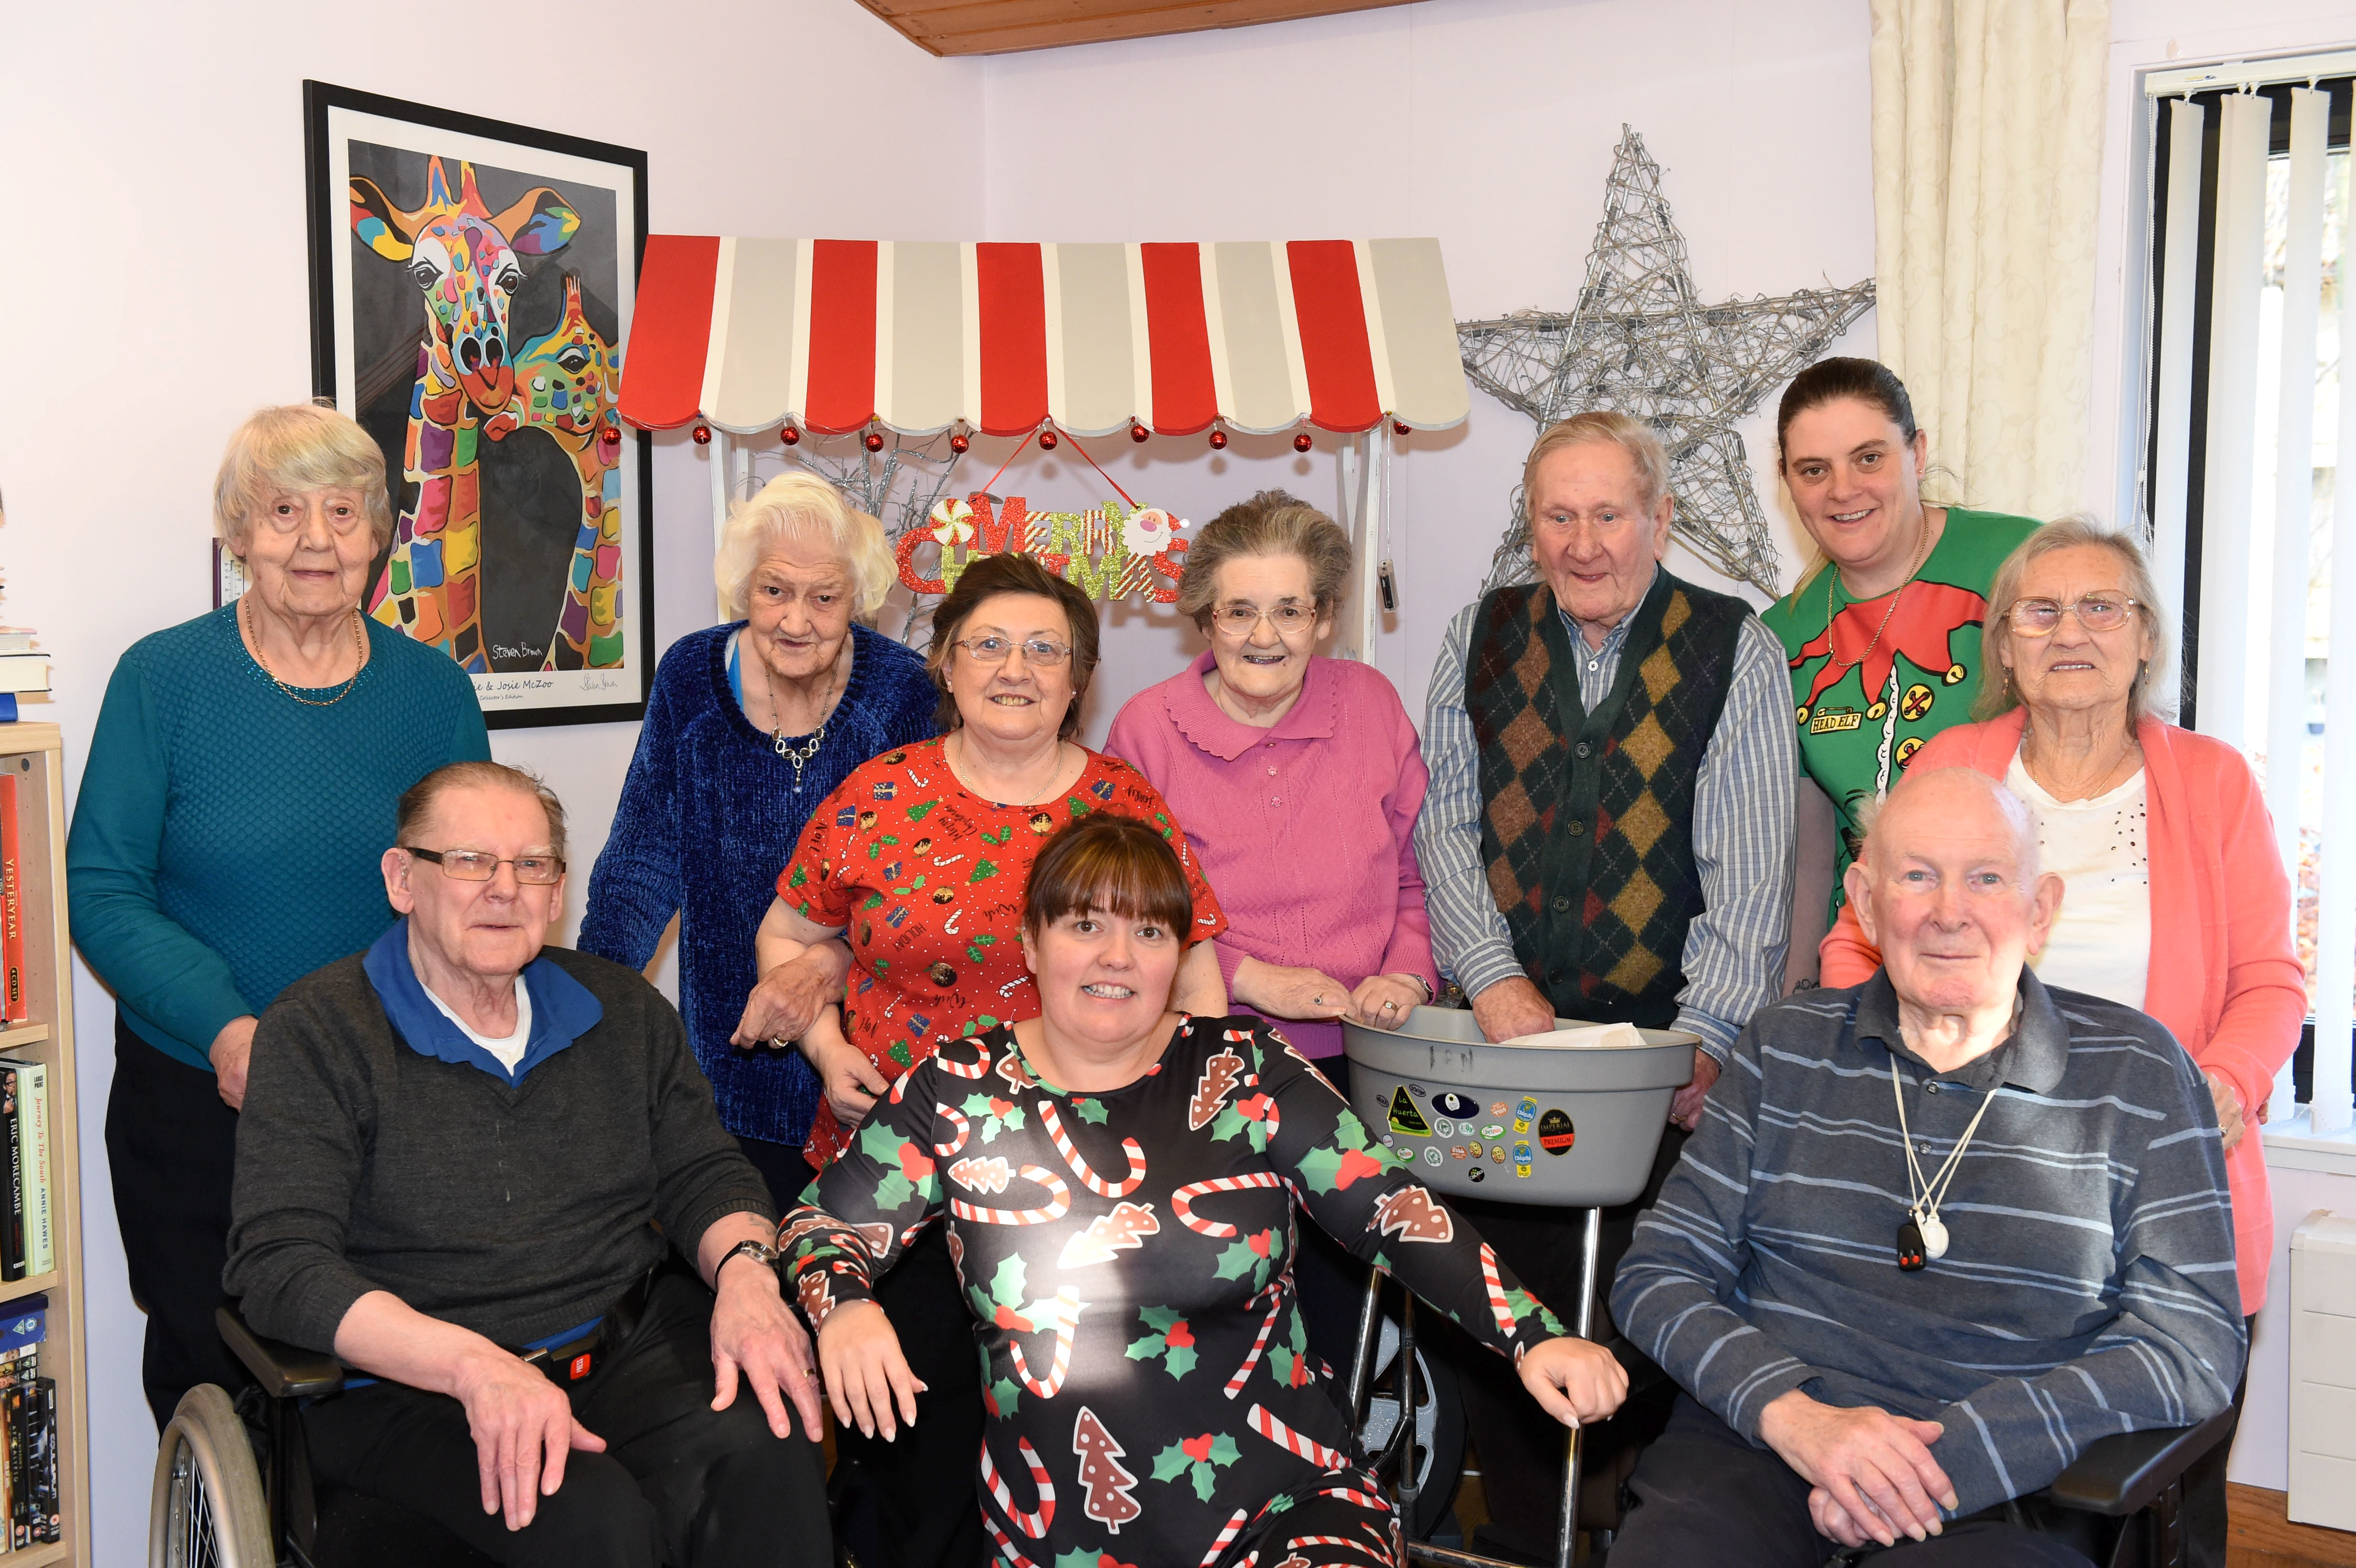 Craigton Road Day Centre is one of the groups hoping to win the P&J minibus competition  Pictured are service users at the centre with Paulene Monaghan ( Service Manager ) at centre of the photo Picture by Paul Glendell